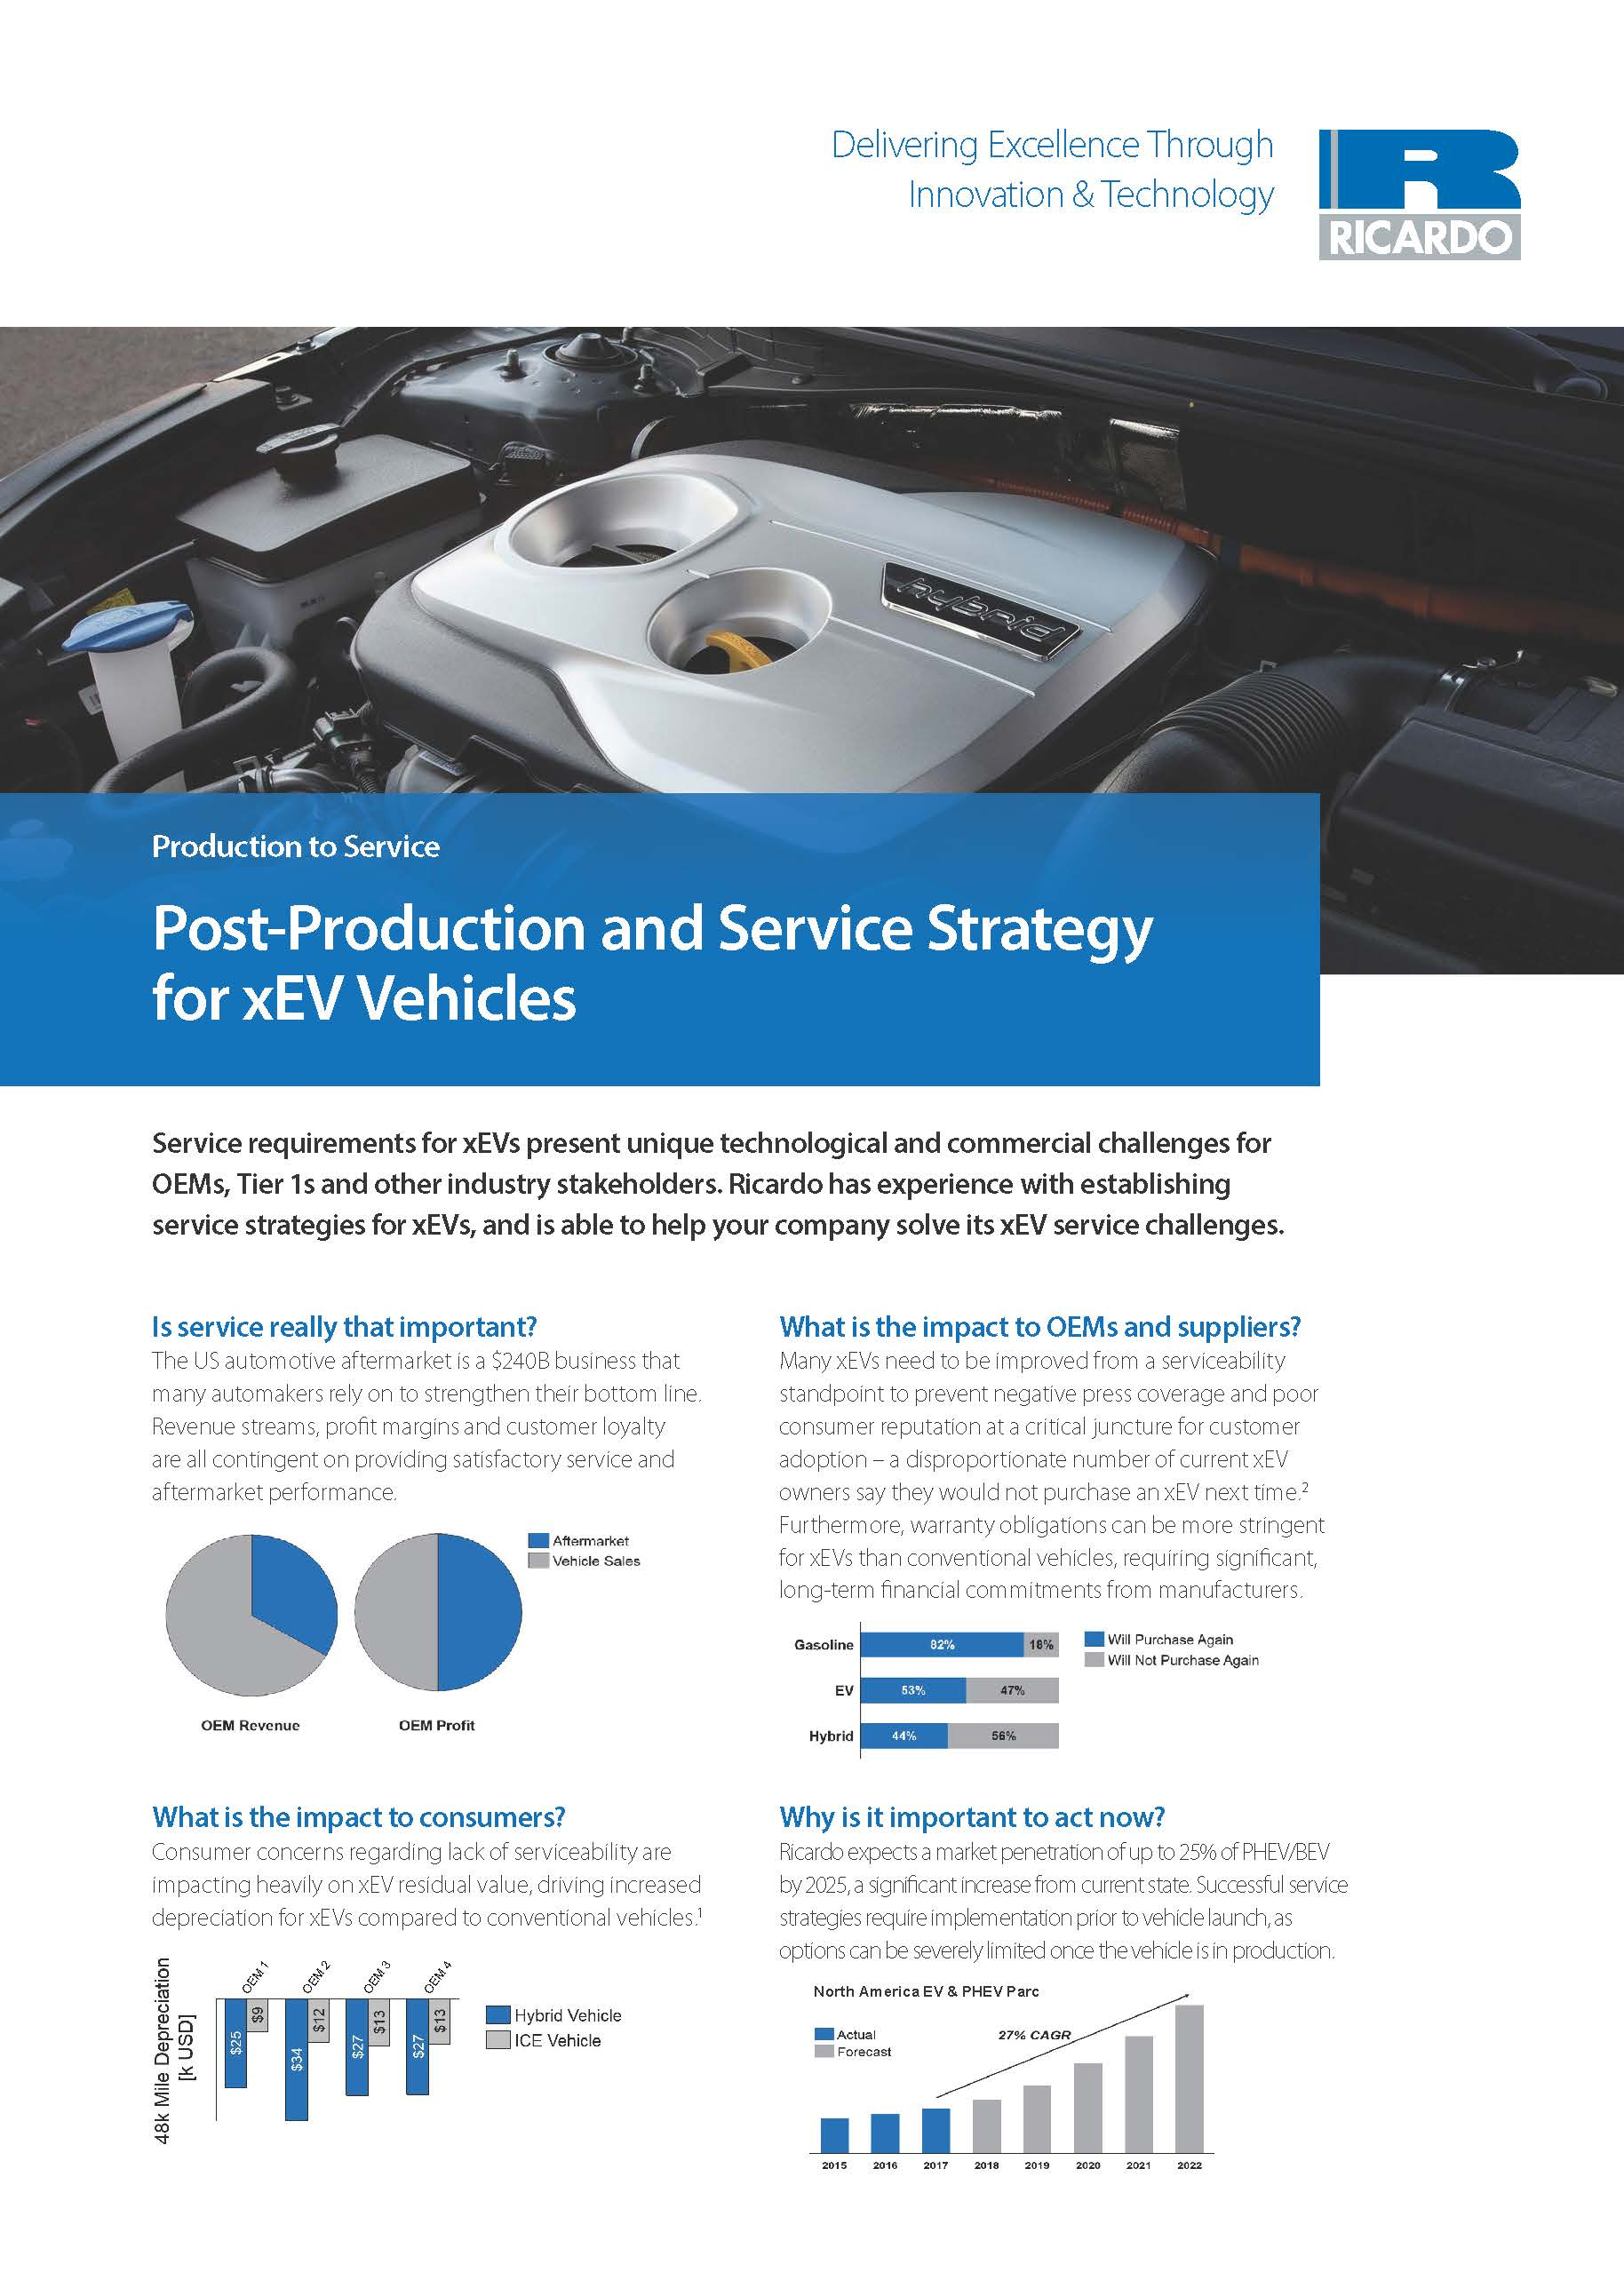 Post-Production and Service Strategy for xEV Vehicles